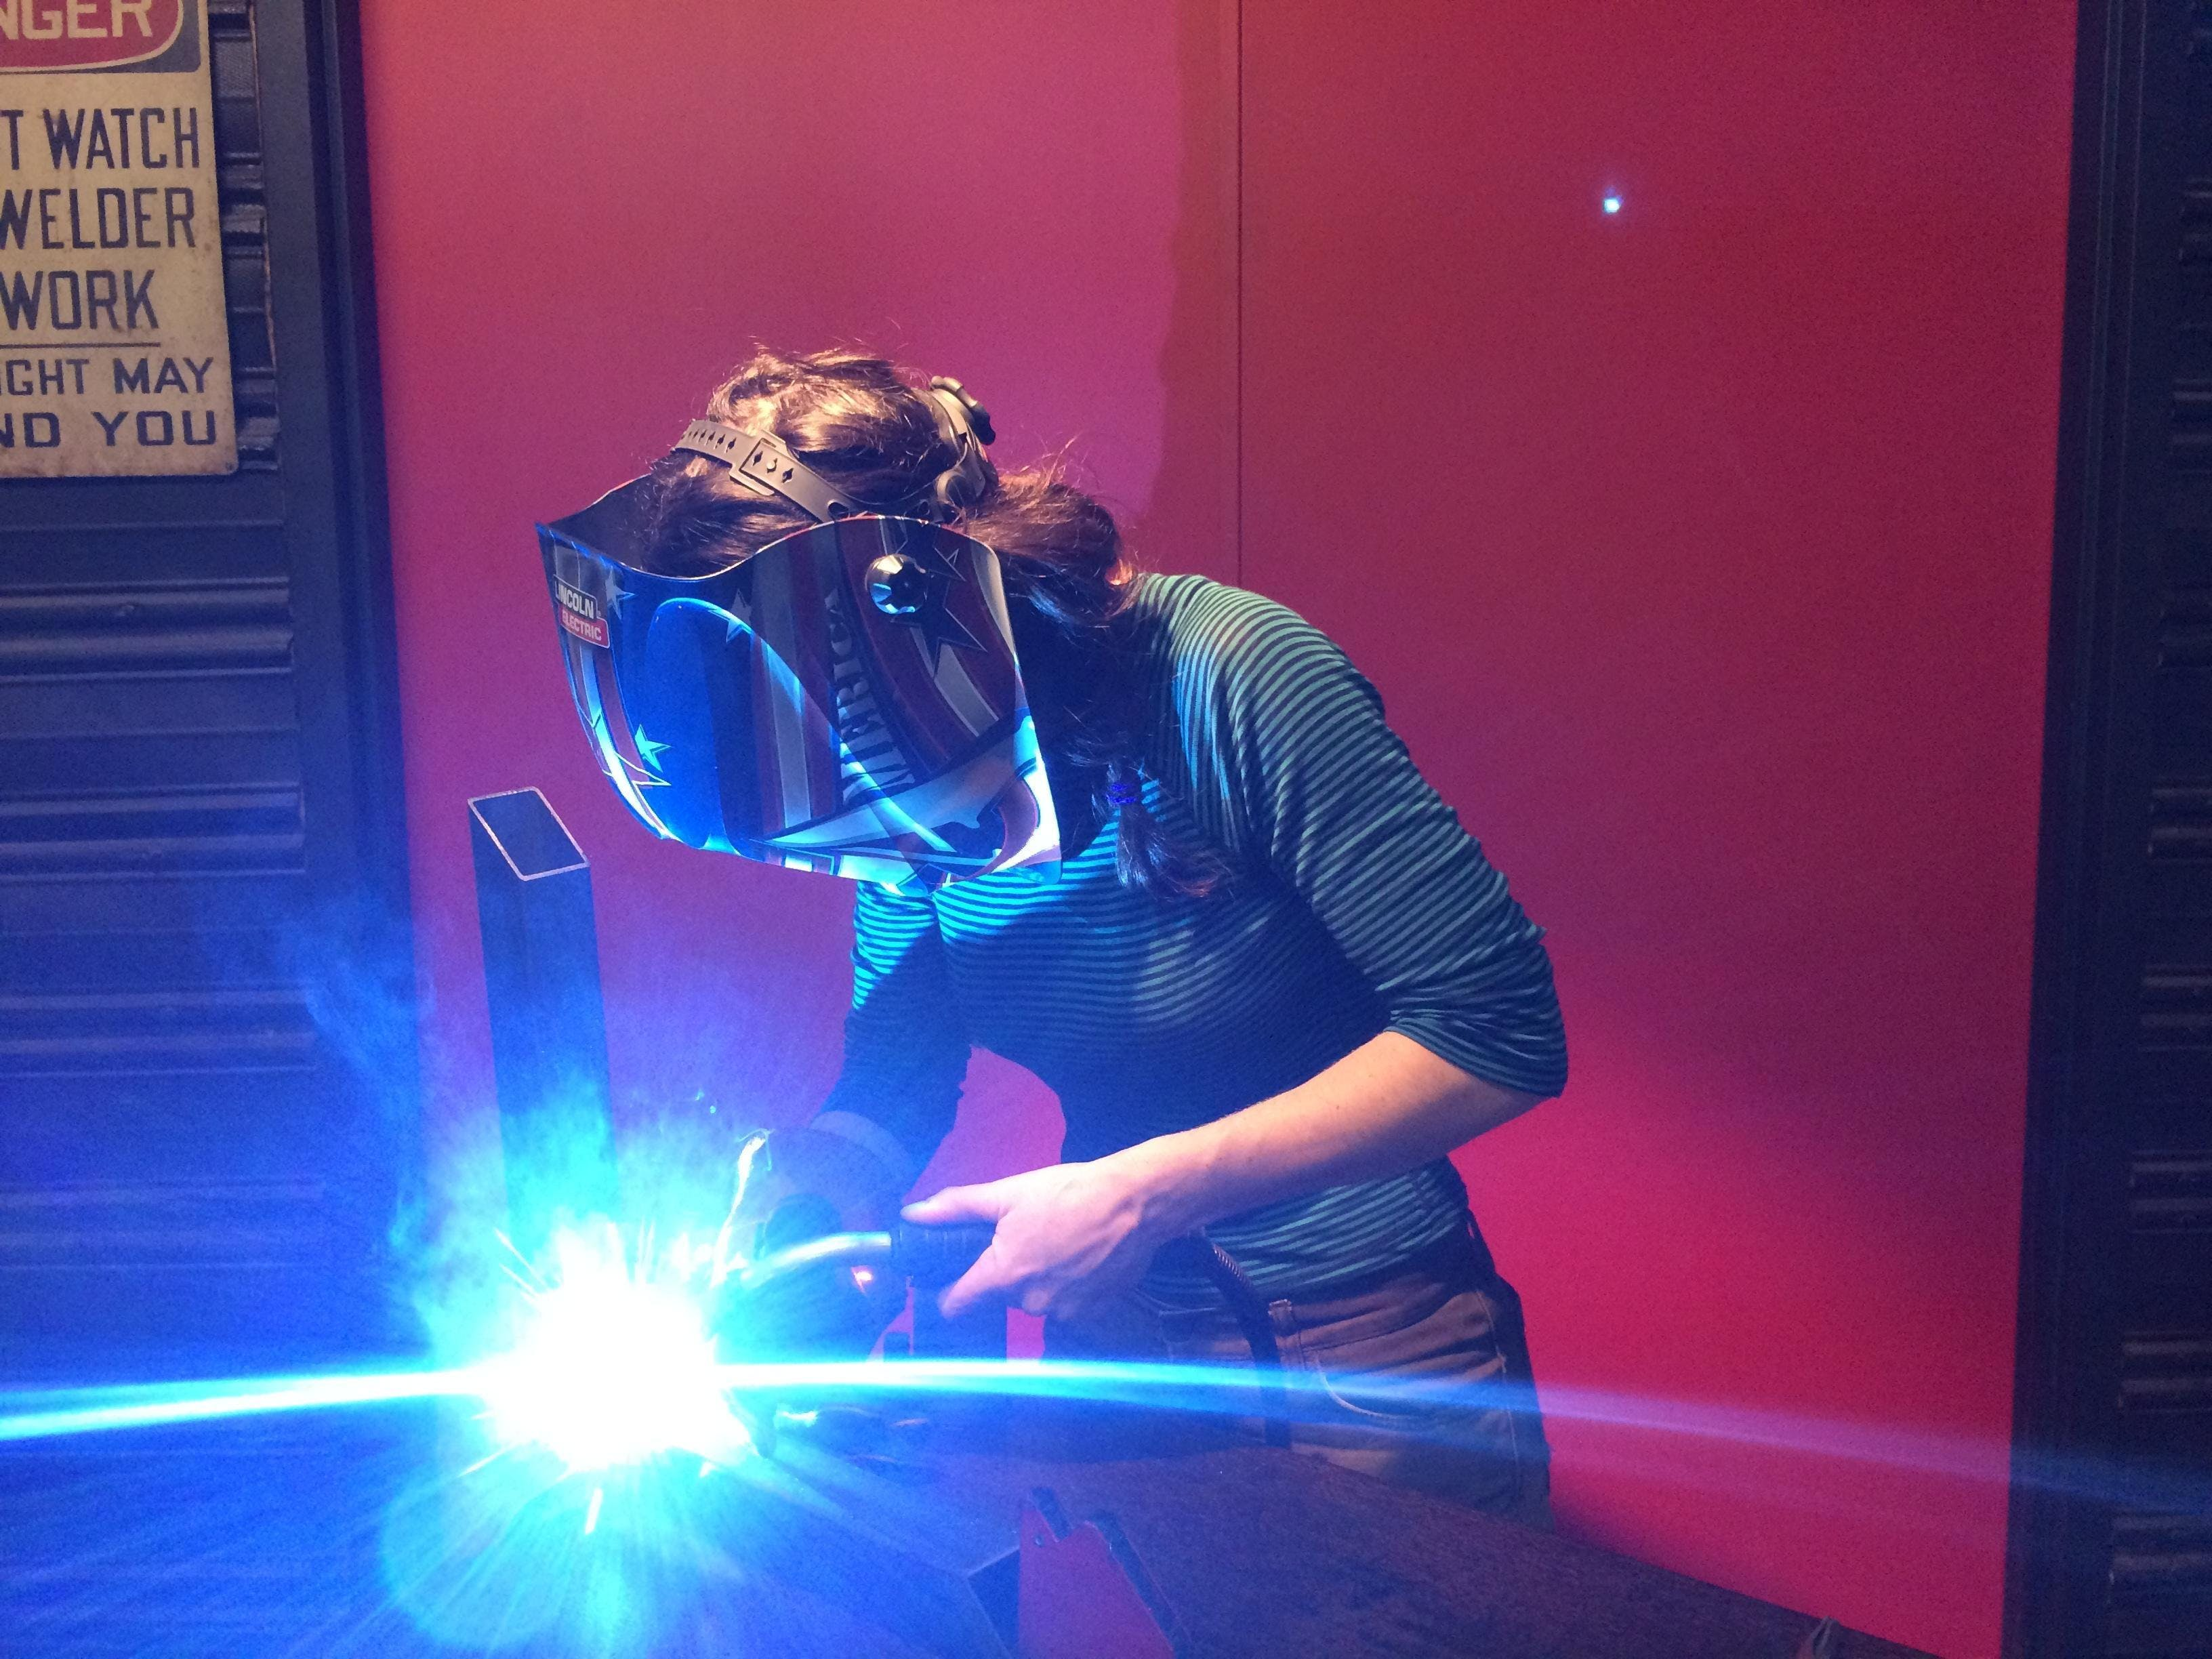 women's welding wednesday workshop 2 | mixxer makerspace